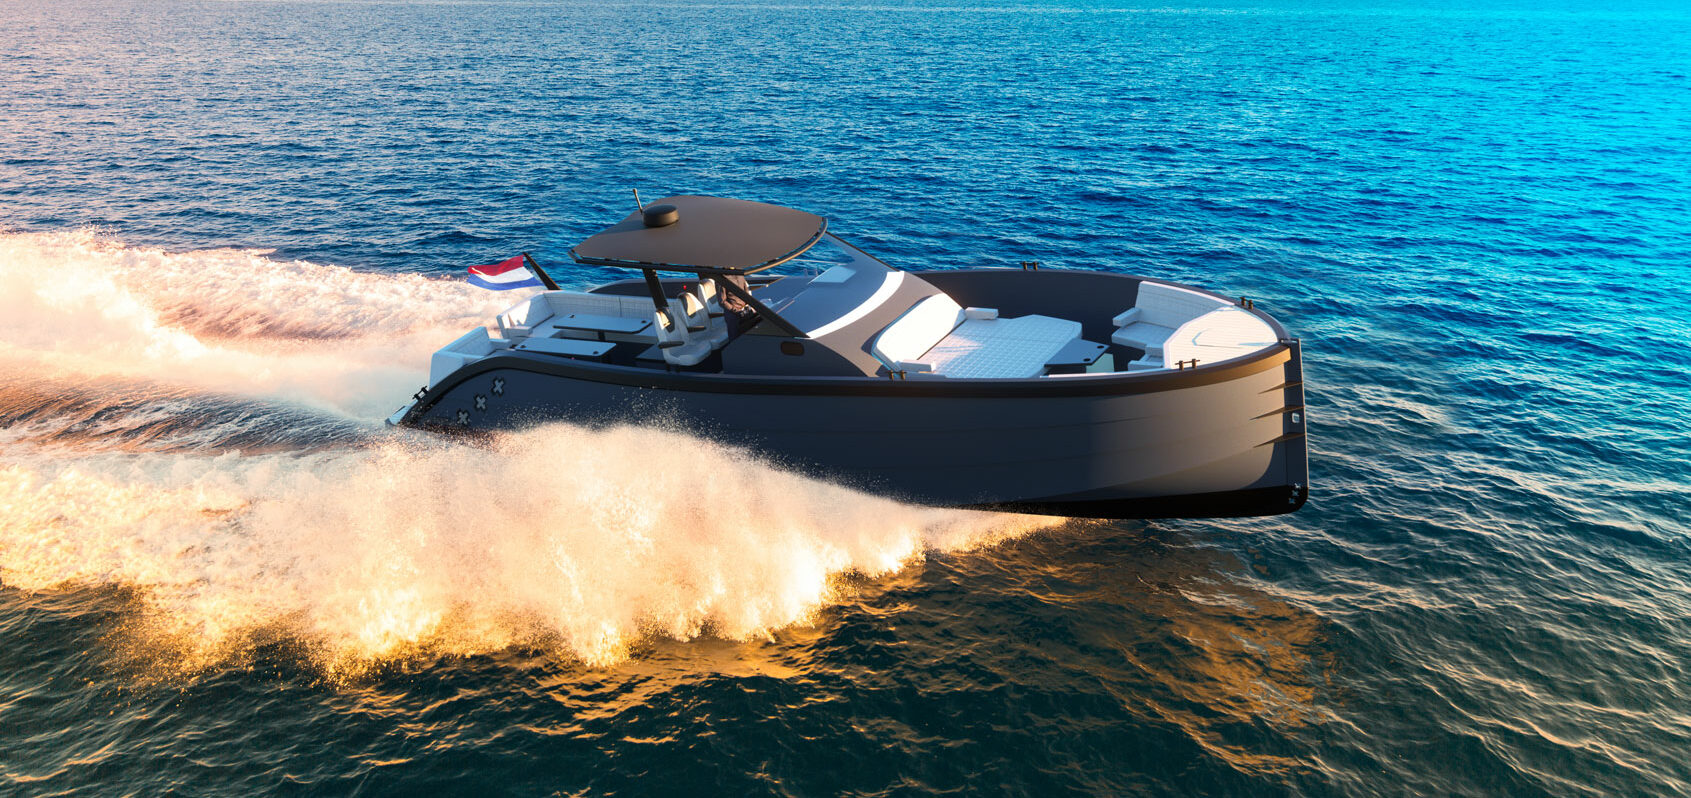 Full speed ahead with the newest model of LEKKER BOATS